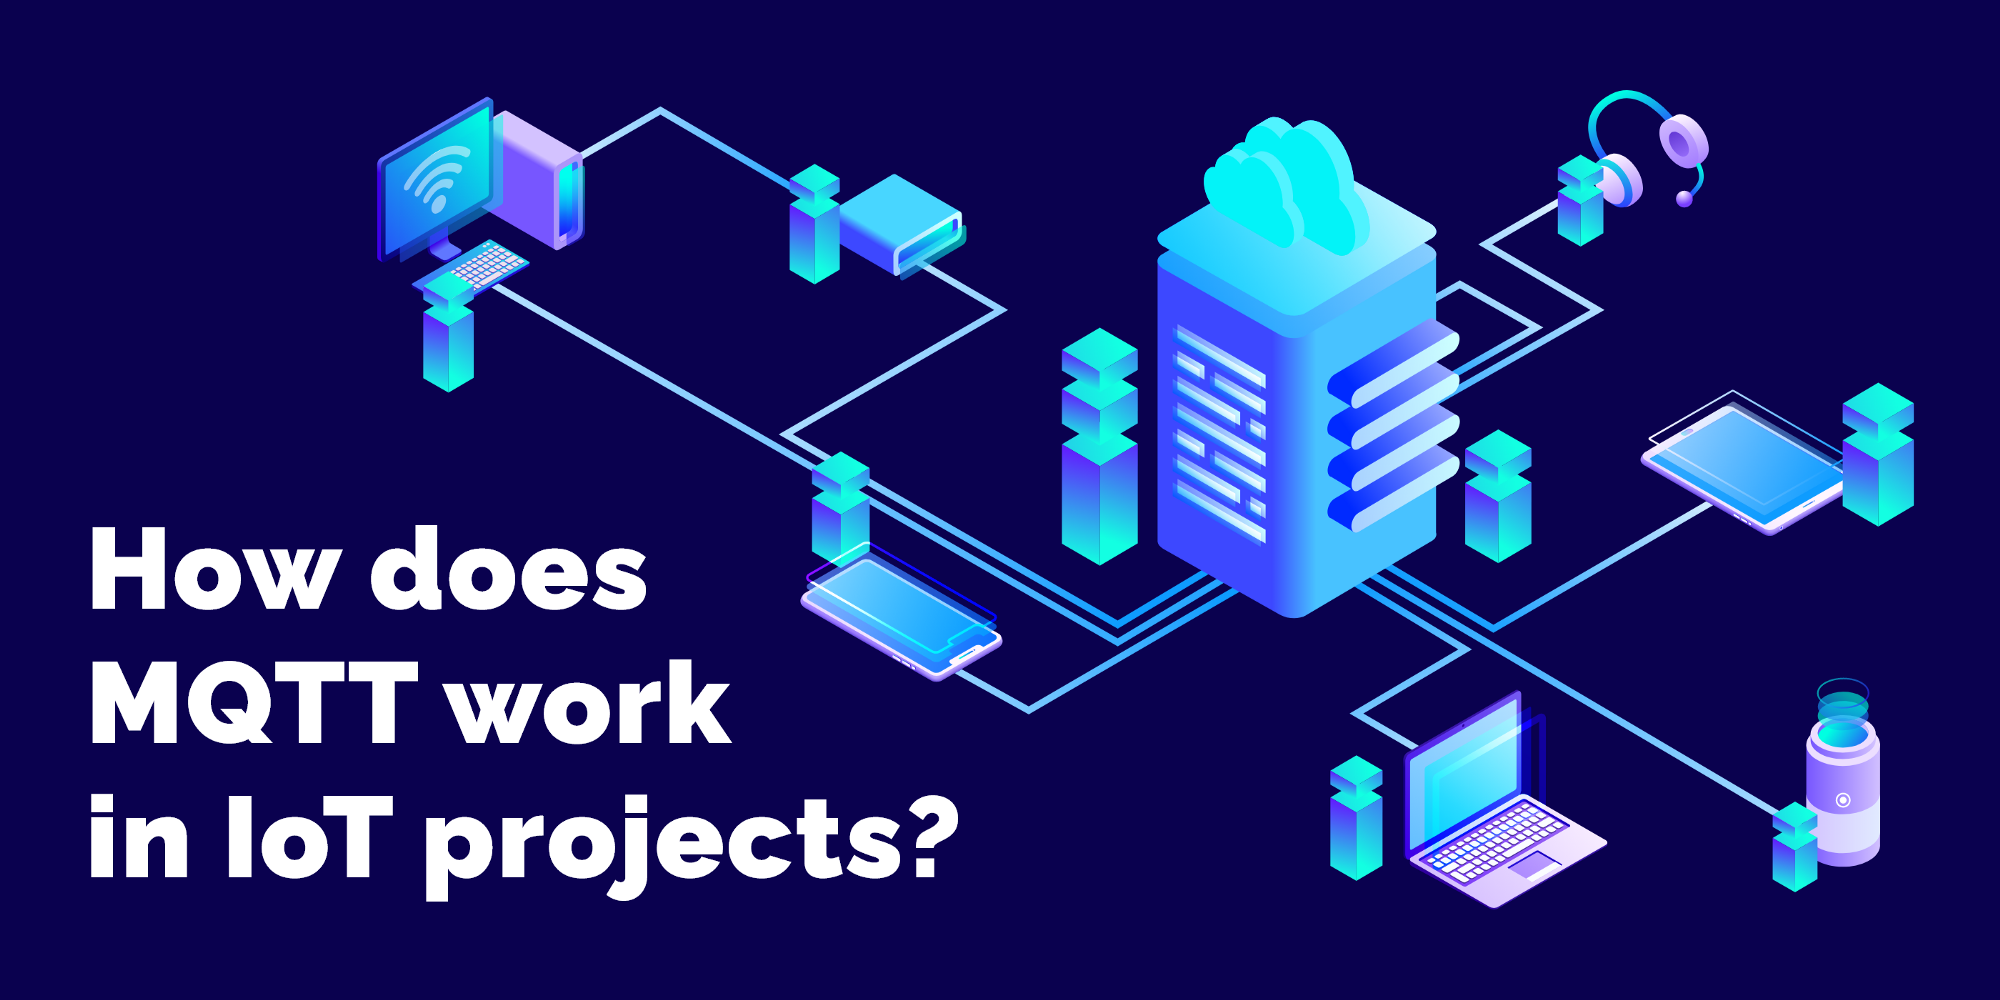 How does MQTT work in IoT projects?